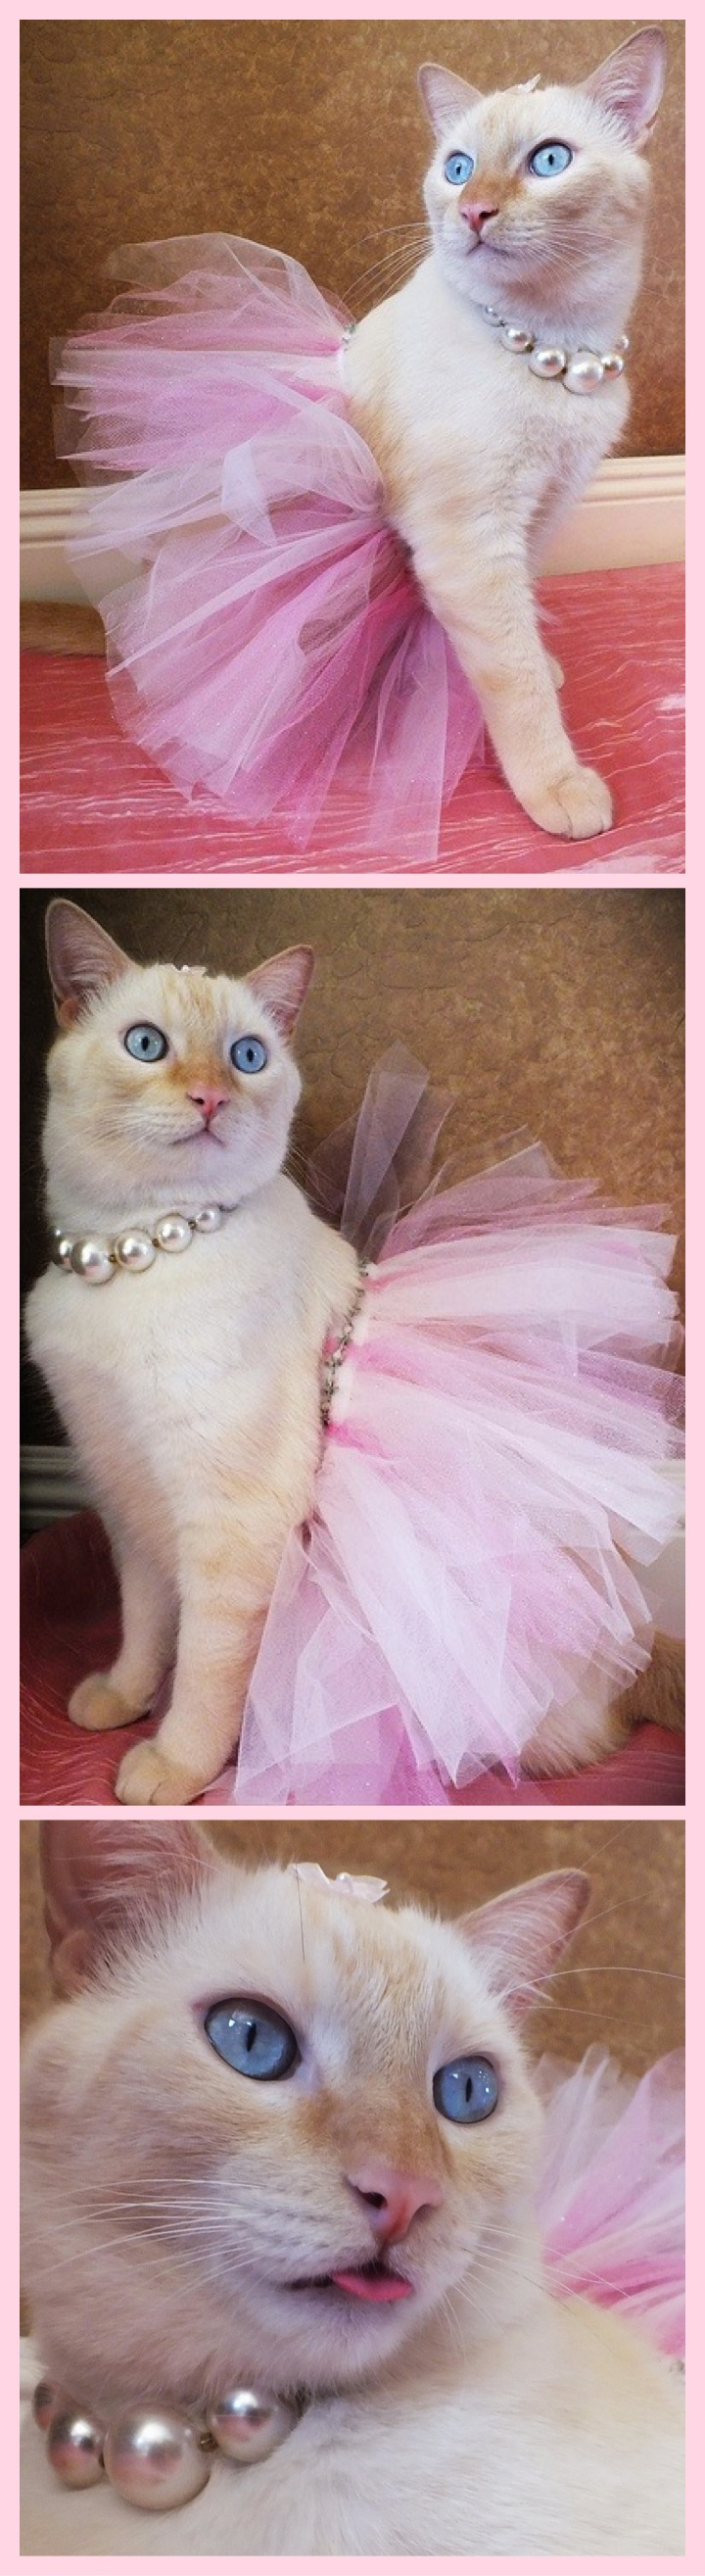 Dean The White And Orange Cat In A Pink Tutu Dress Outfit Costume Flame Point Siamese With Big Blue Eyes And Pearl Pet Fashion Princess Kitty Cat Dressed Up